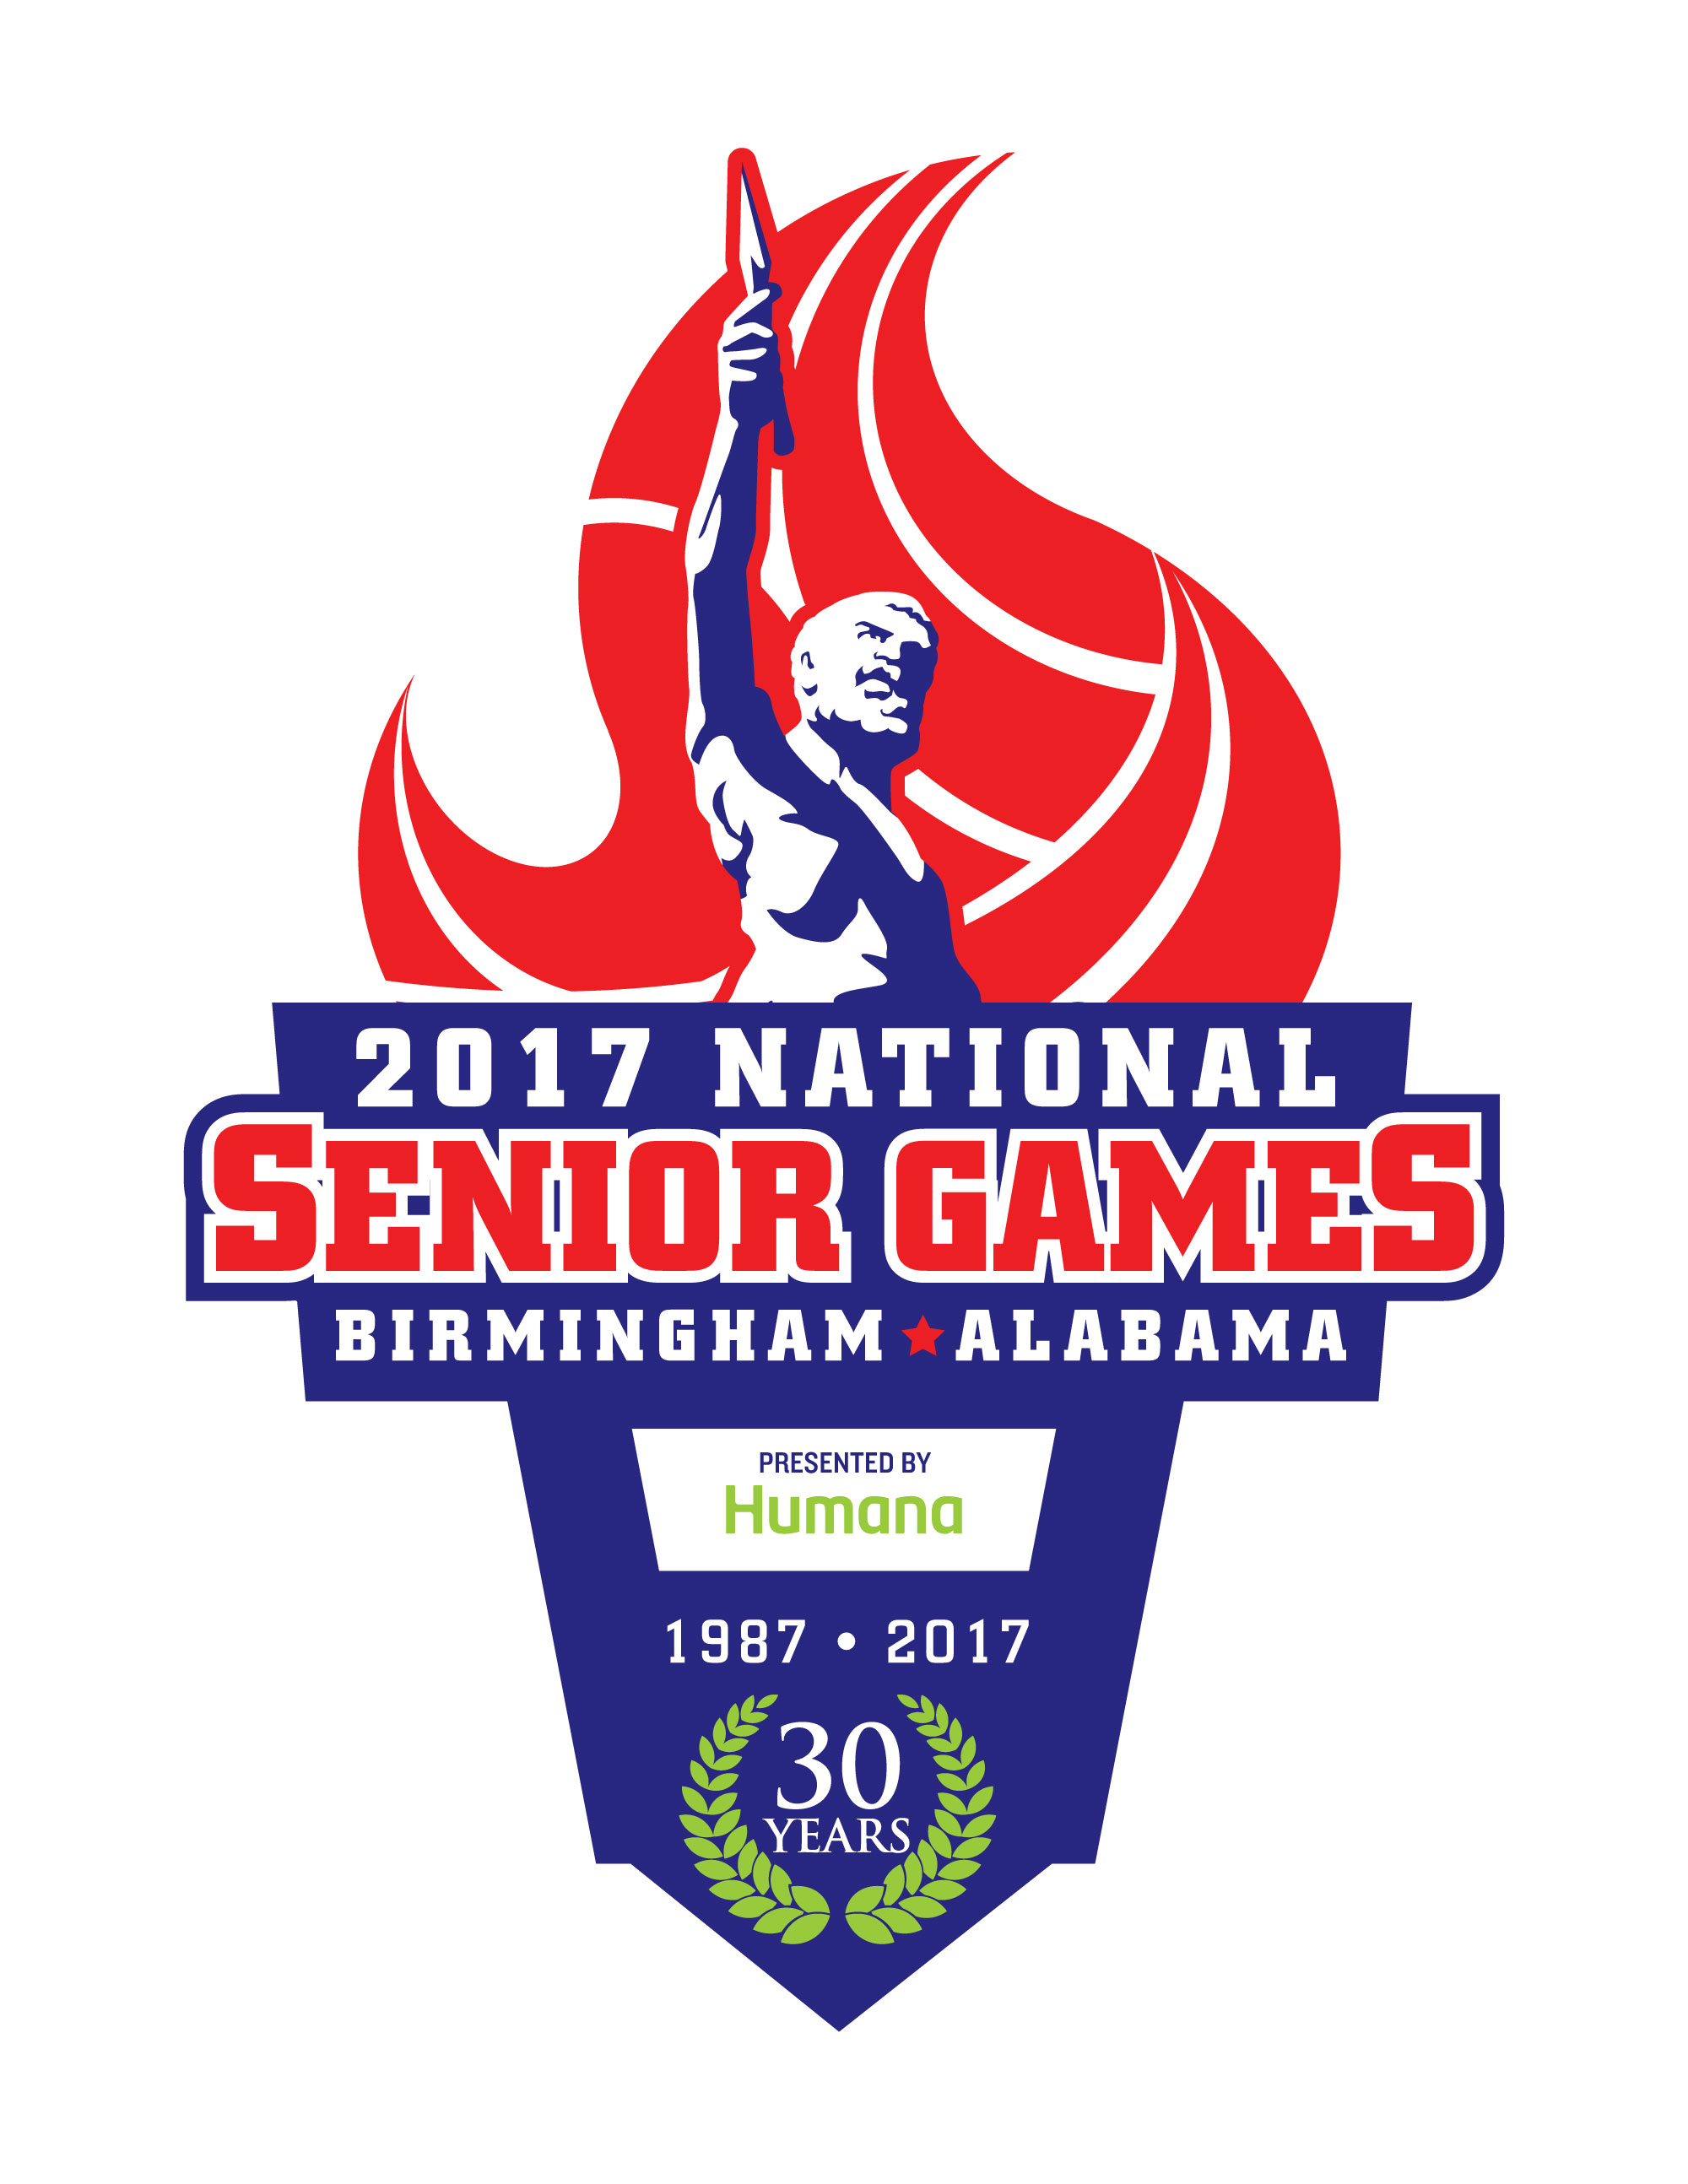 2017 National Senior Games